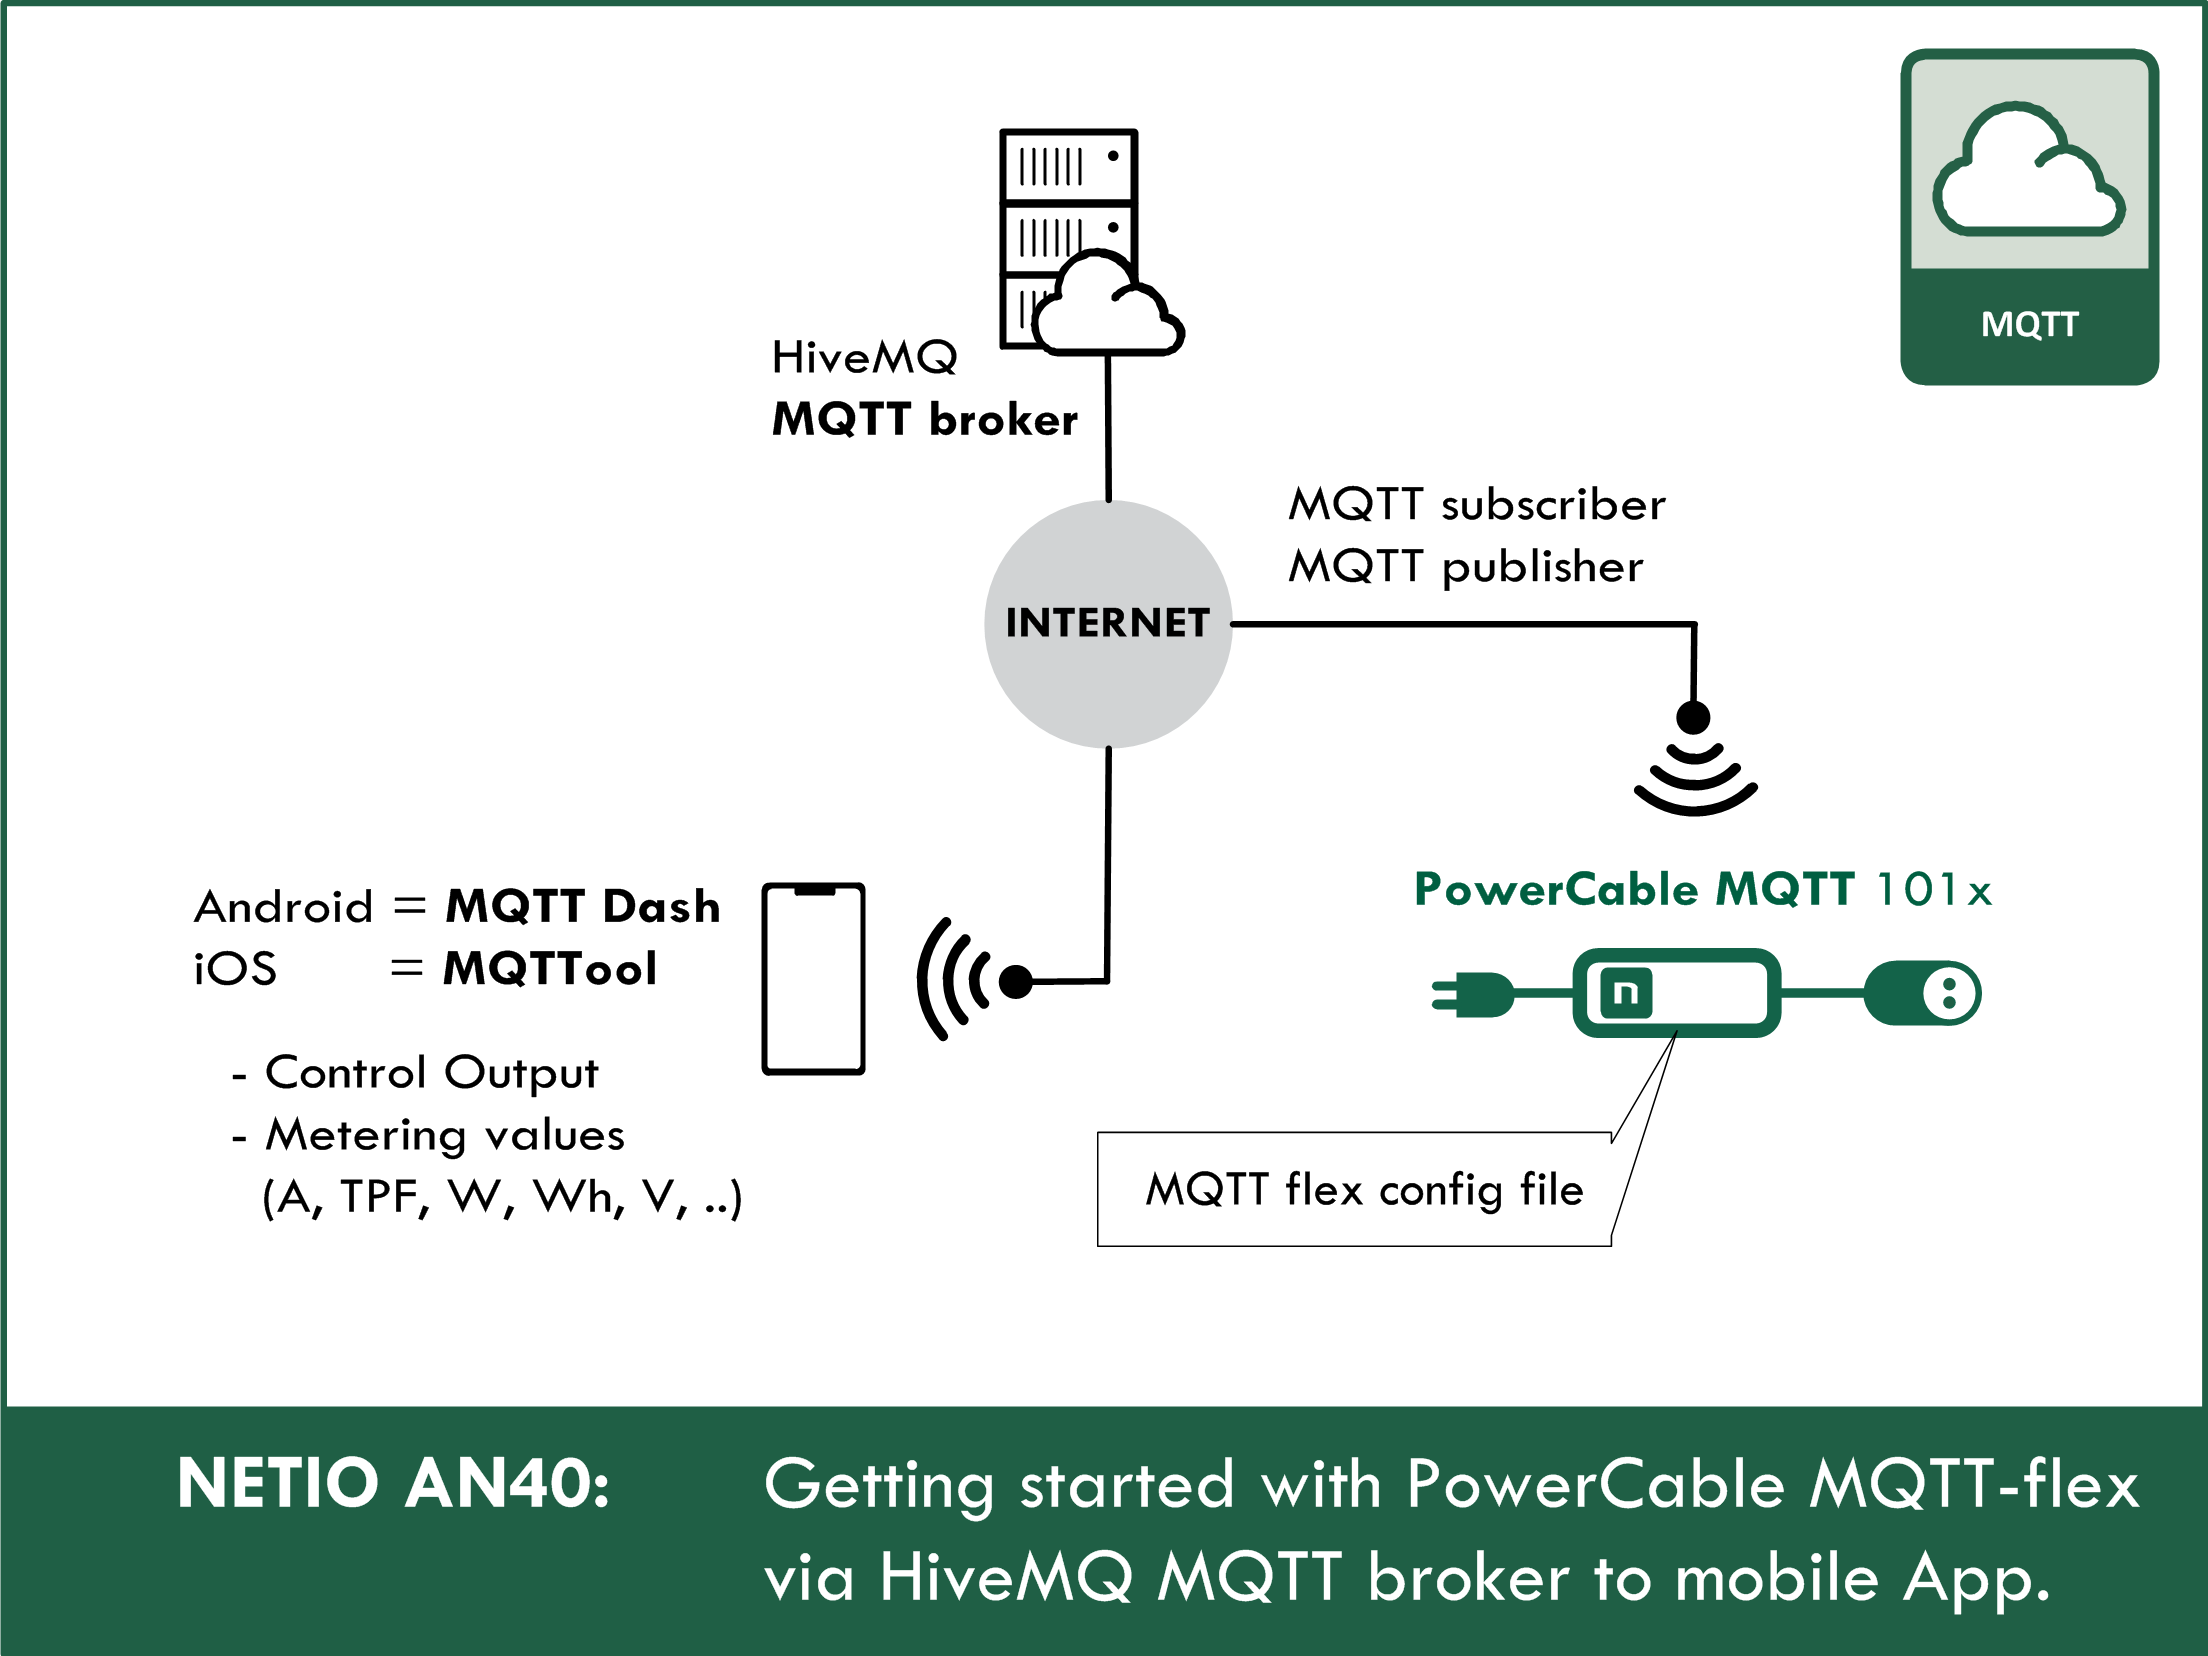 Getting started with PowerCable MQTT-flex via HiveMQ MQTT broker to mobile App.